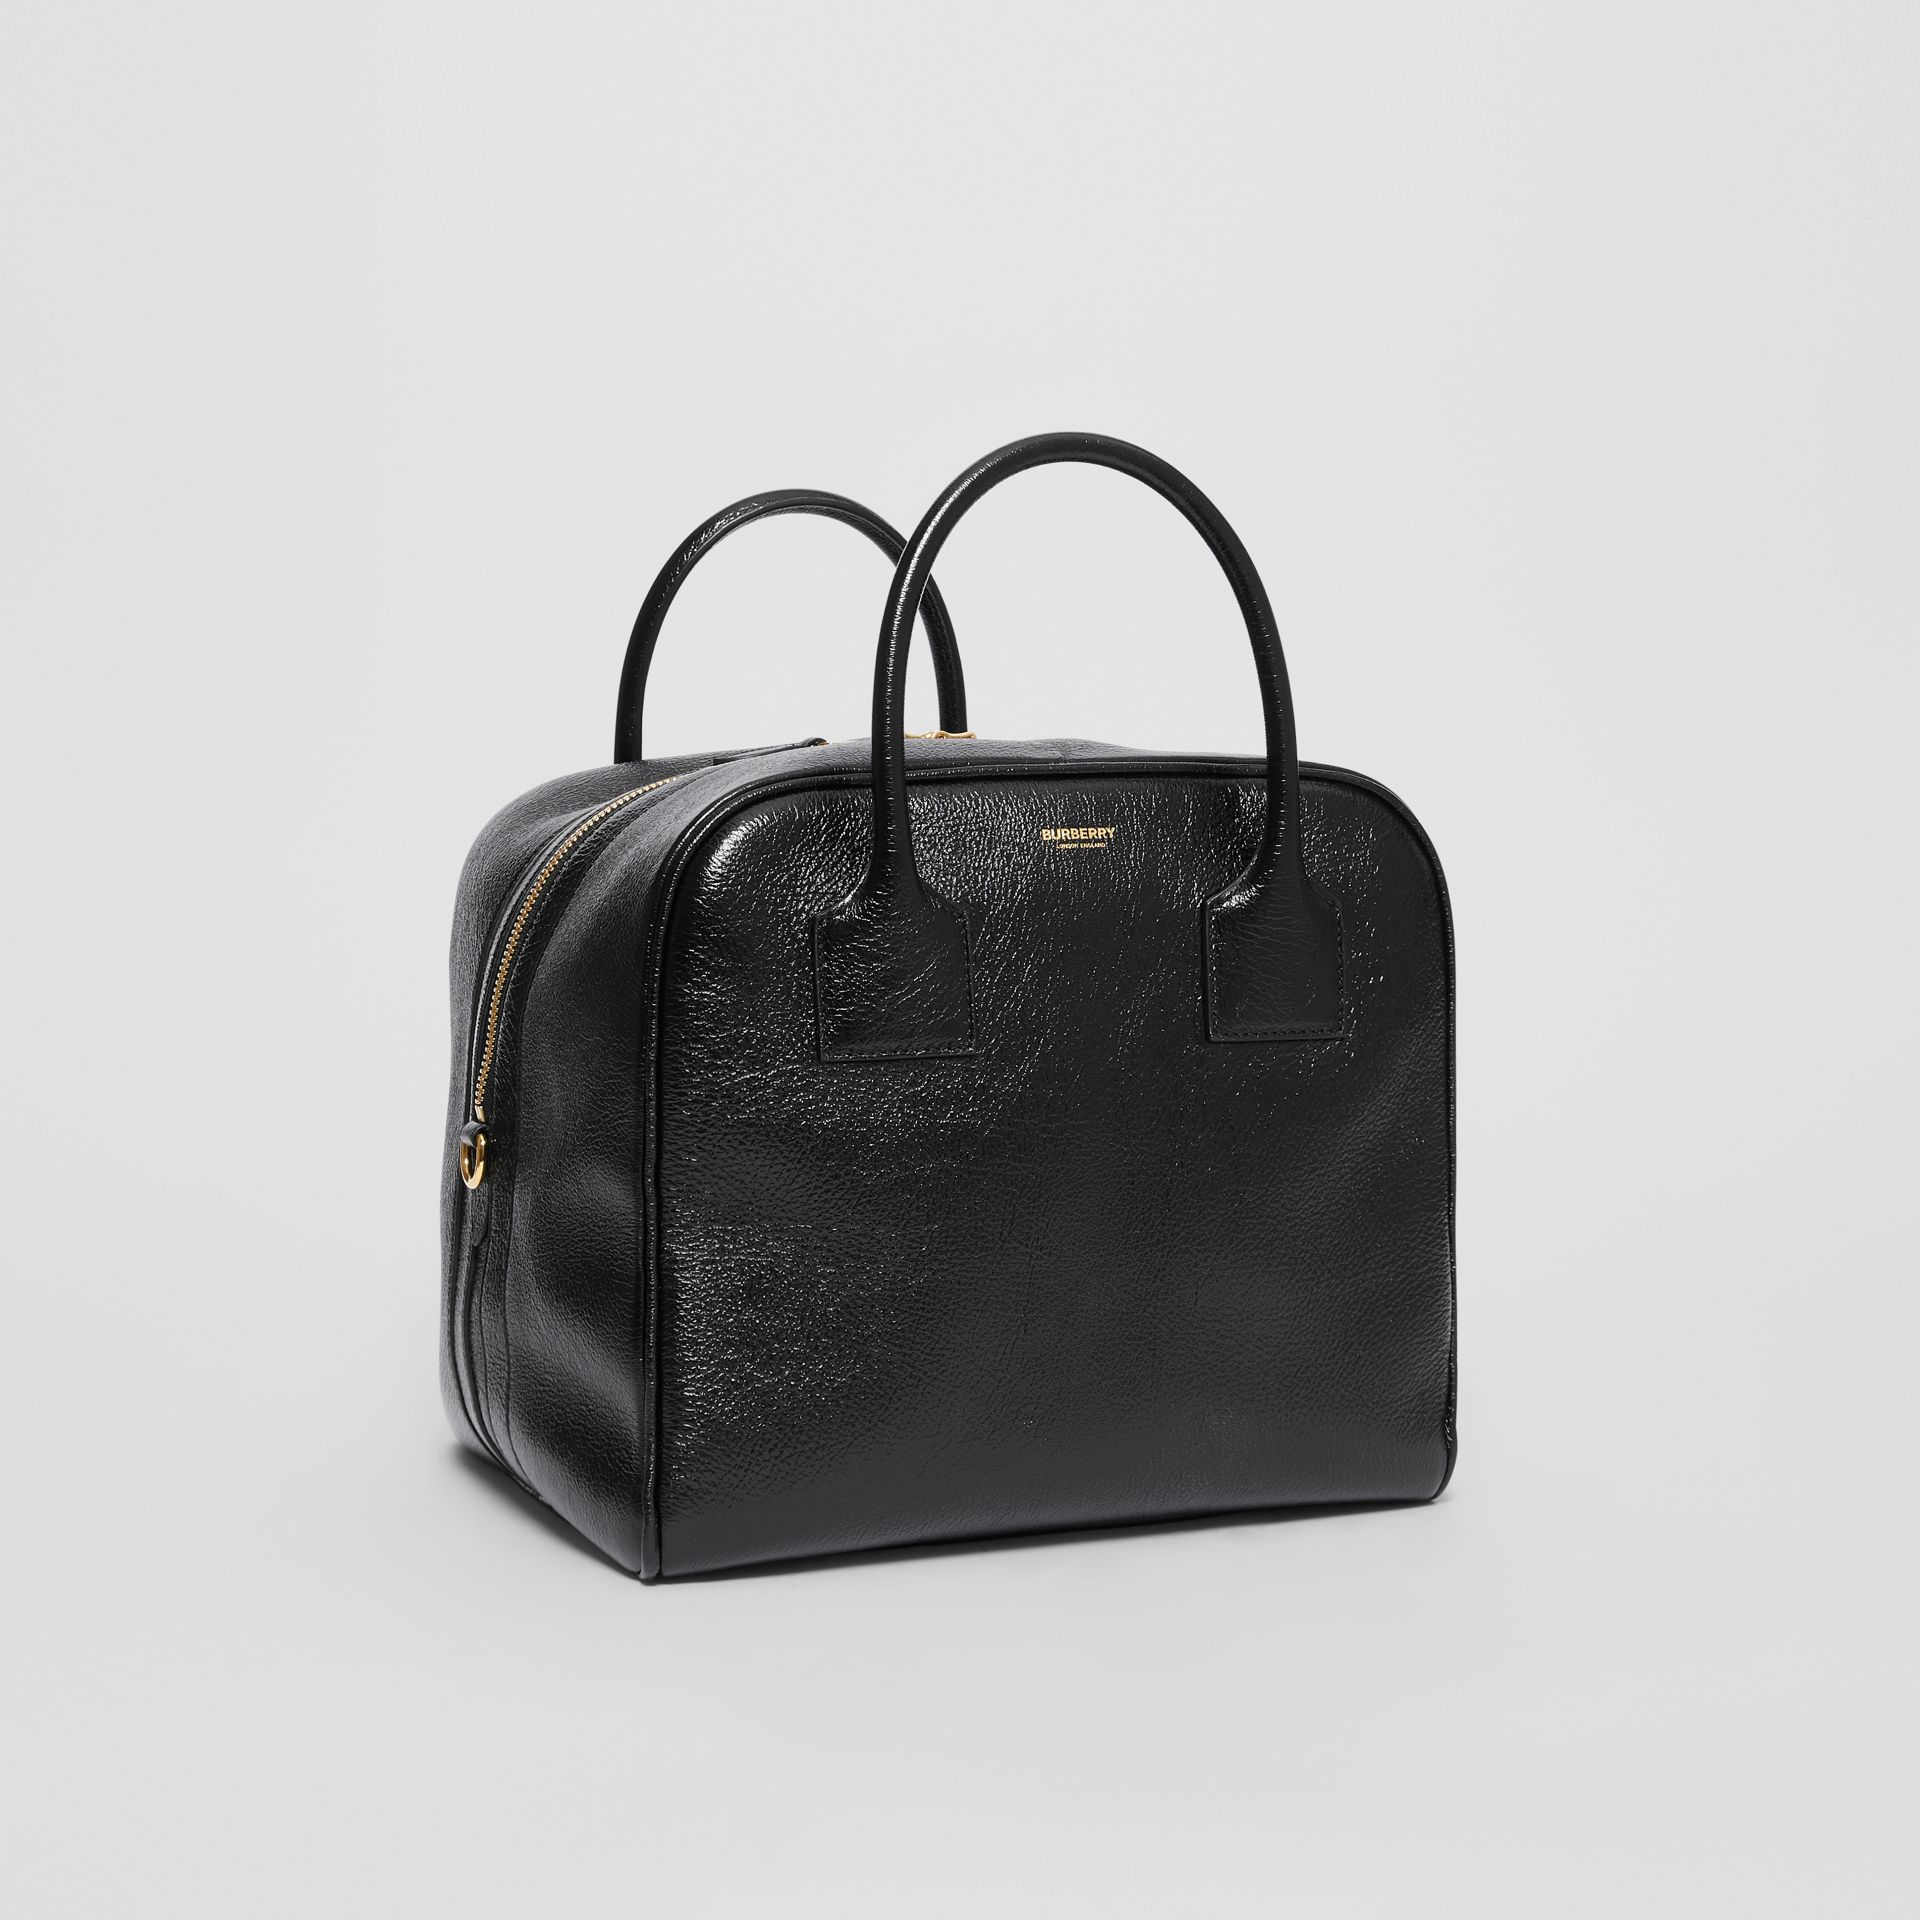 Medium Lambskin Cube Bag in Black - Women | Burberry - gallery image 6